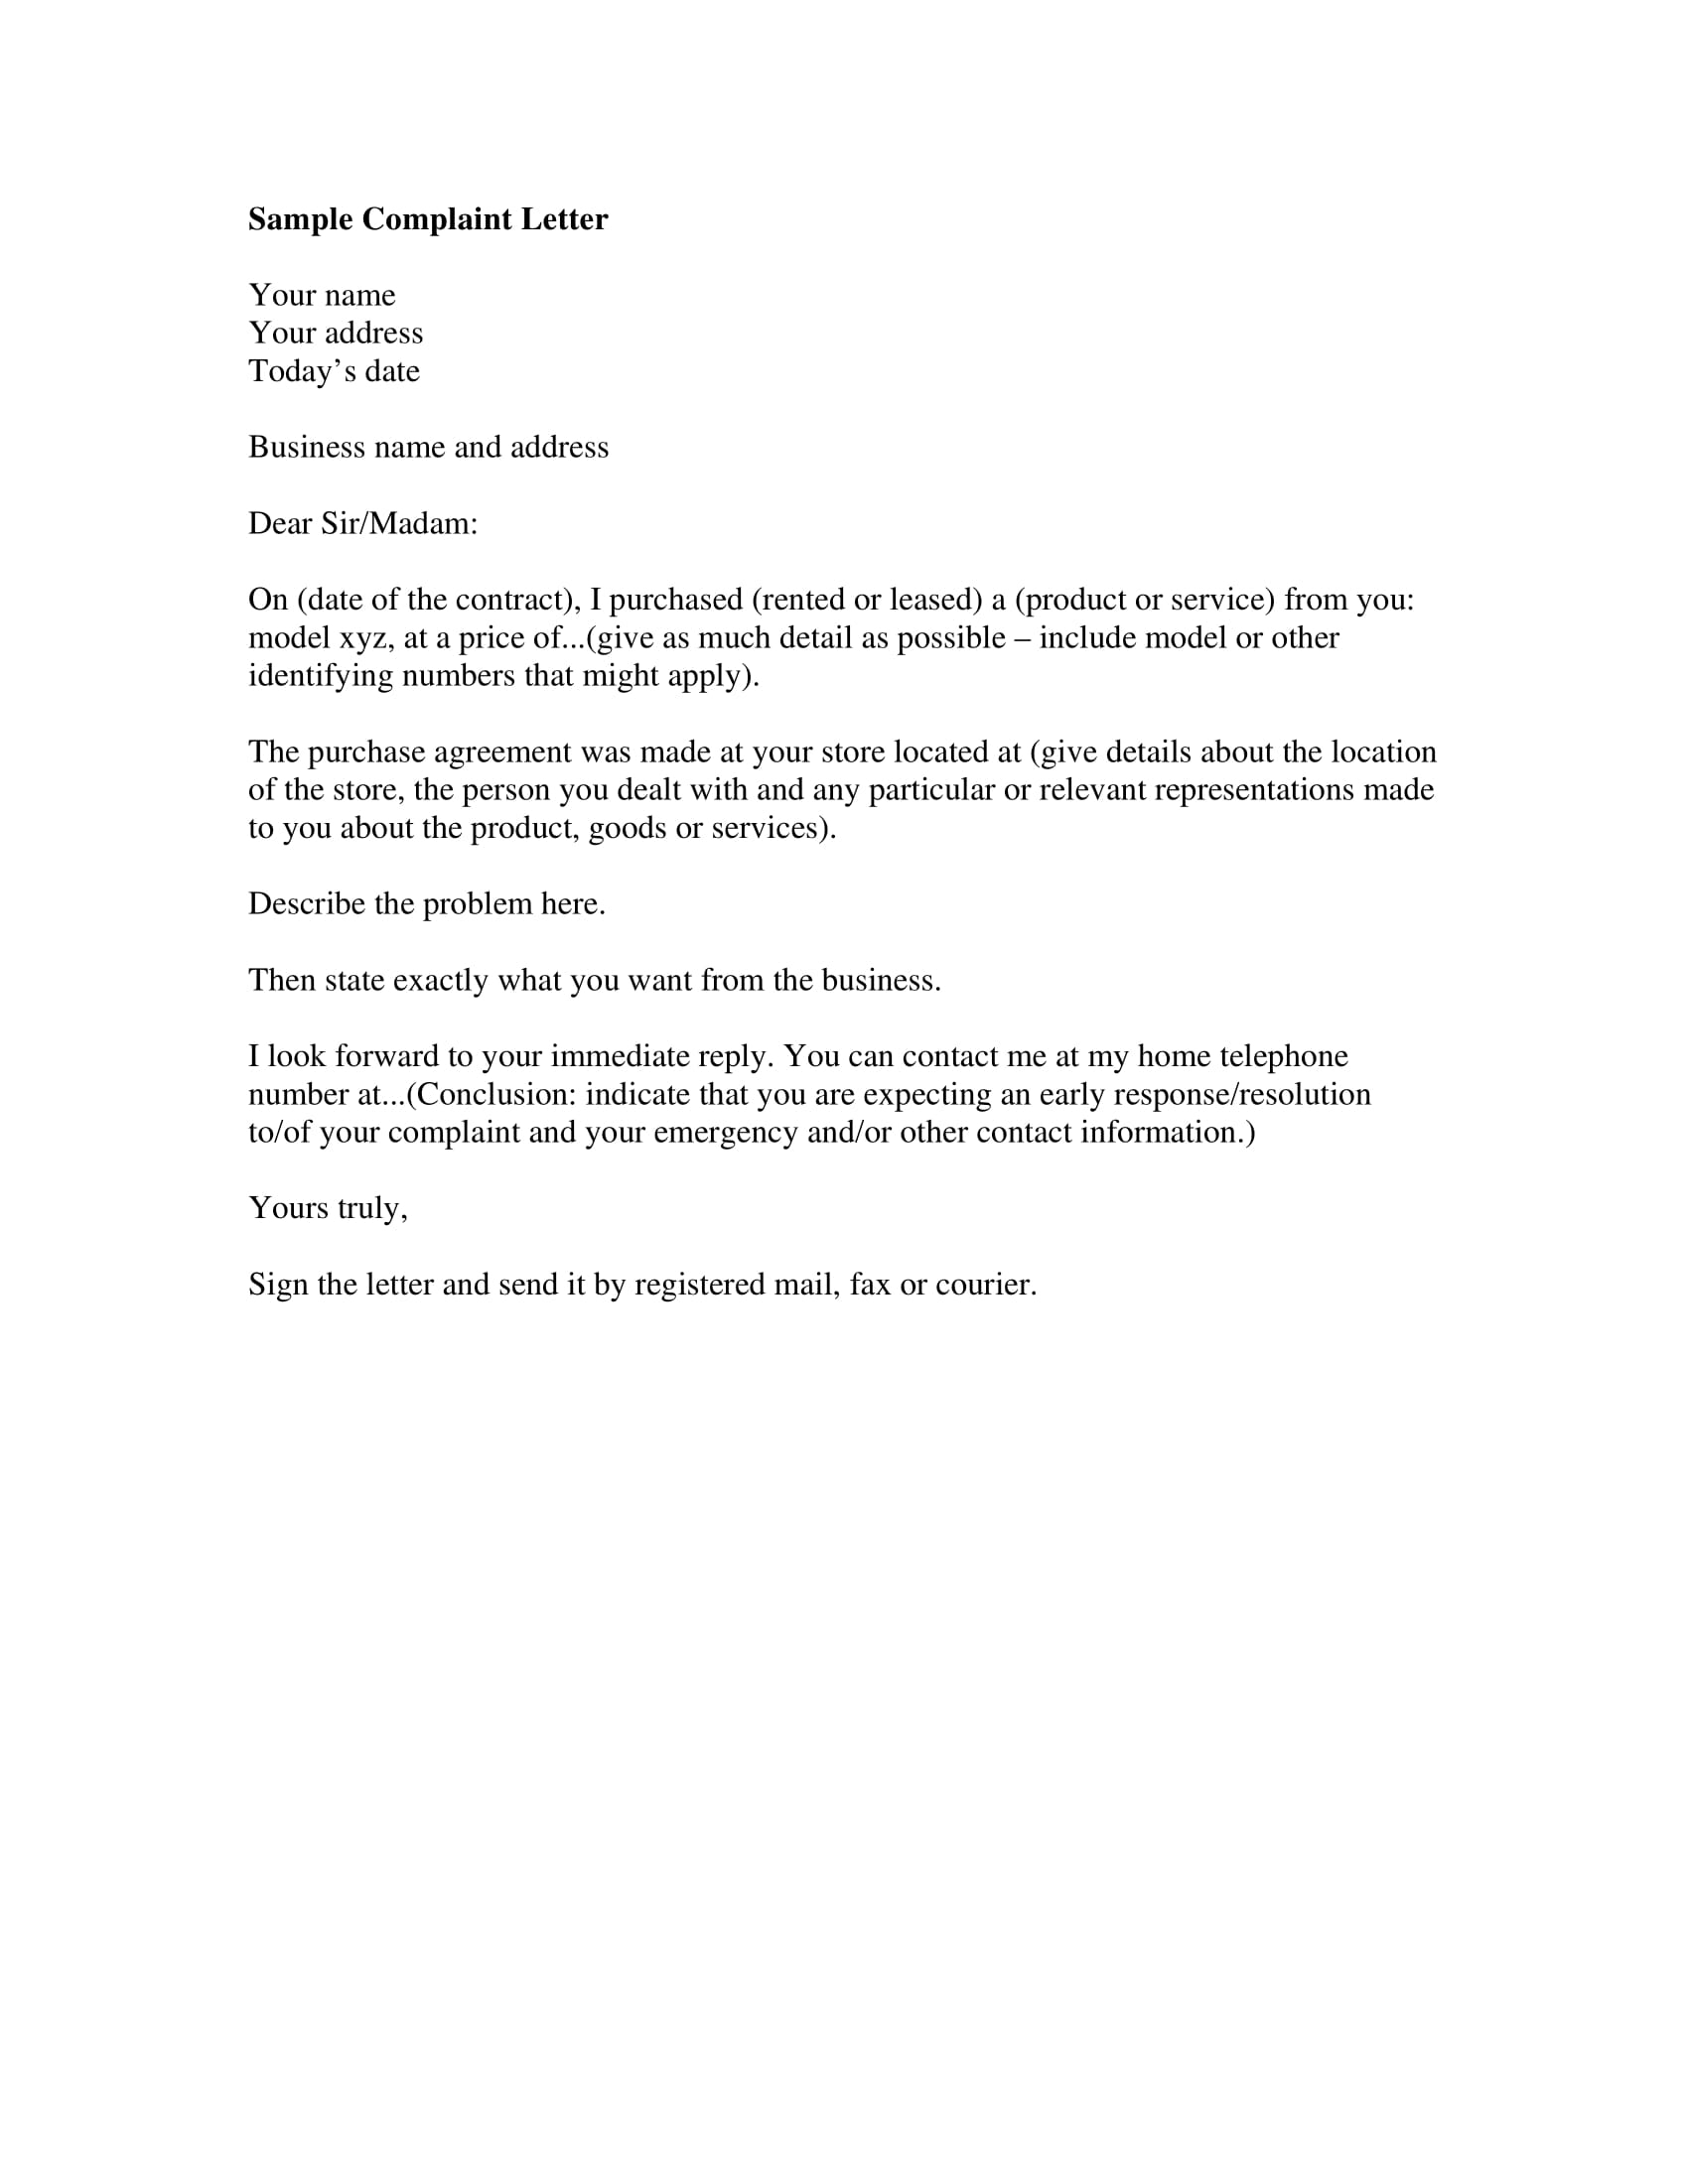 sample claims letter